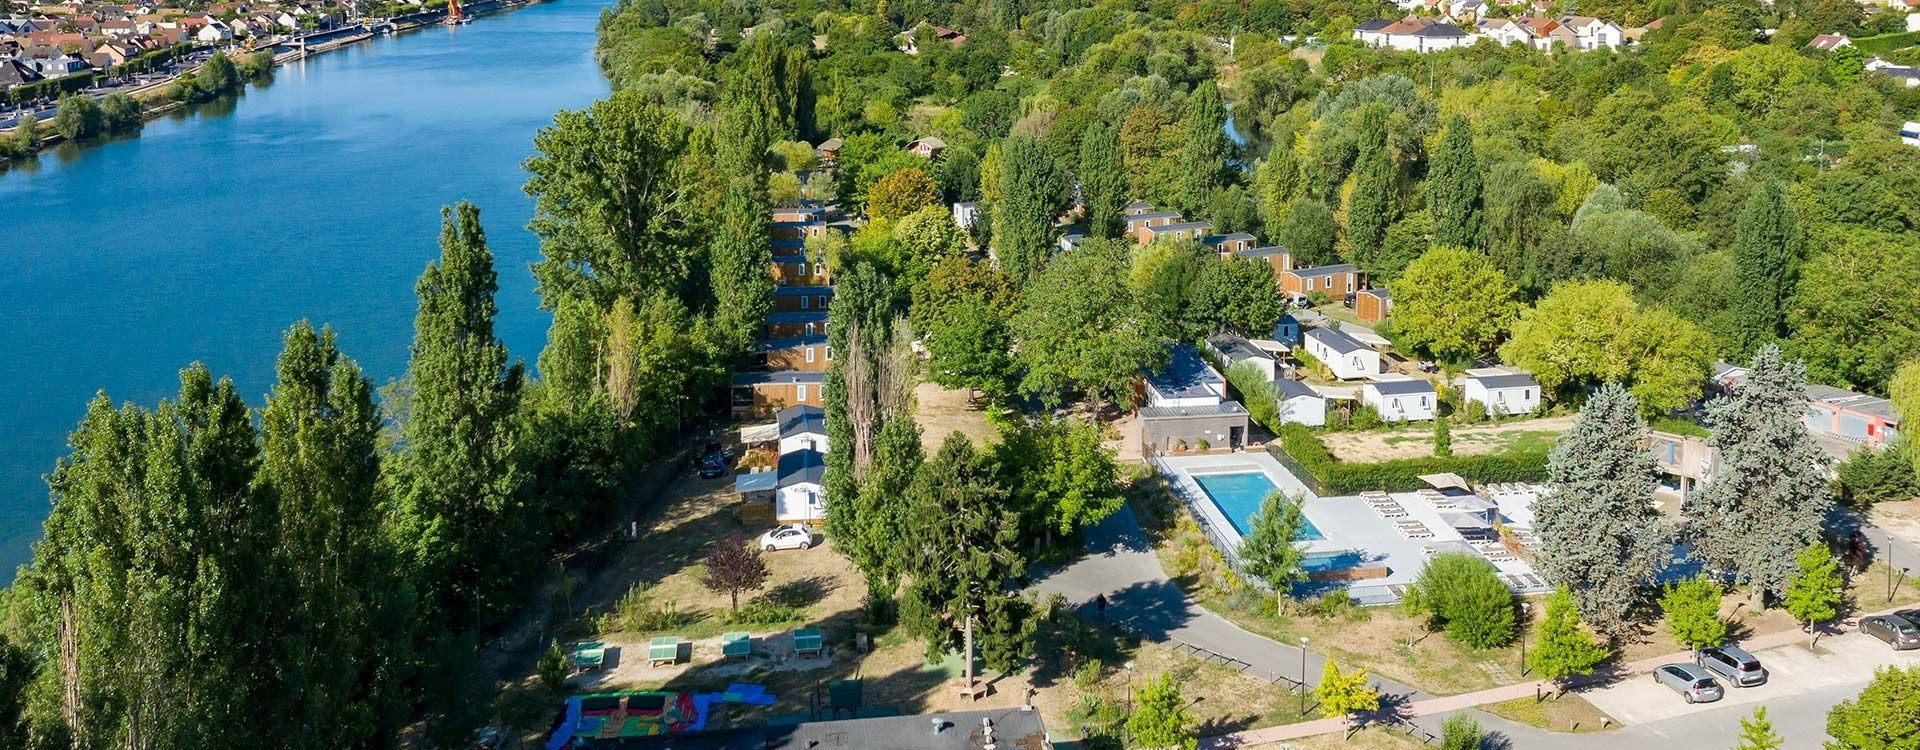 Campsite Paris Maisons-Laffitte